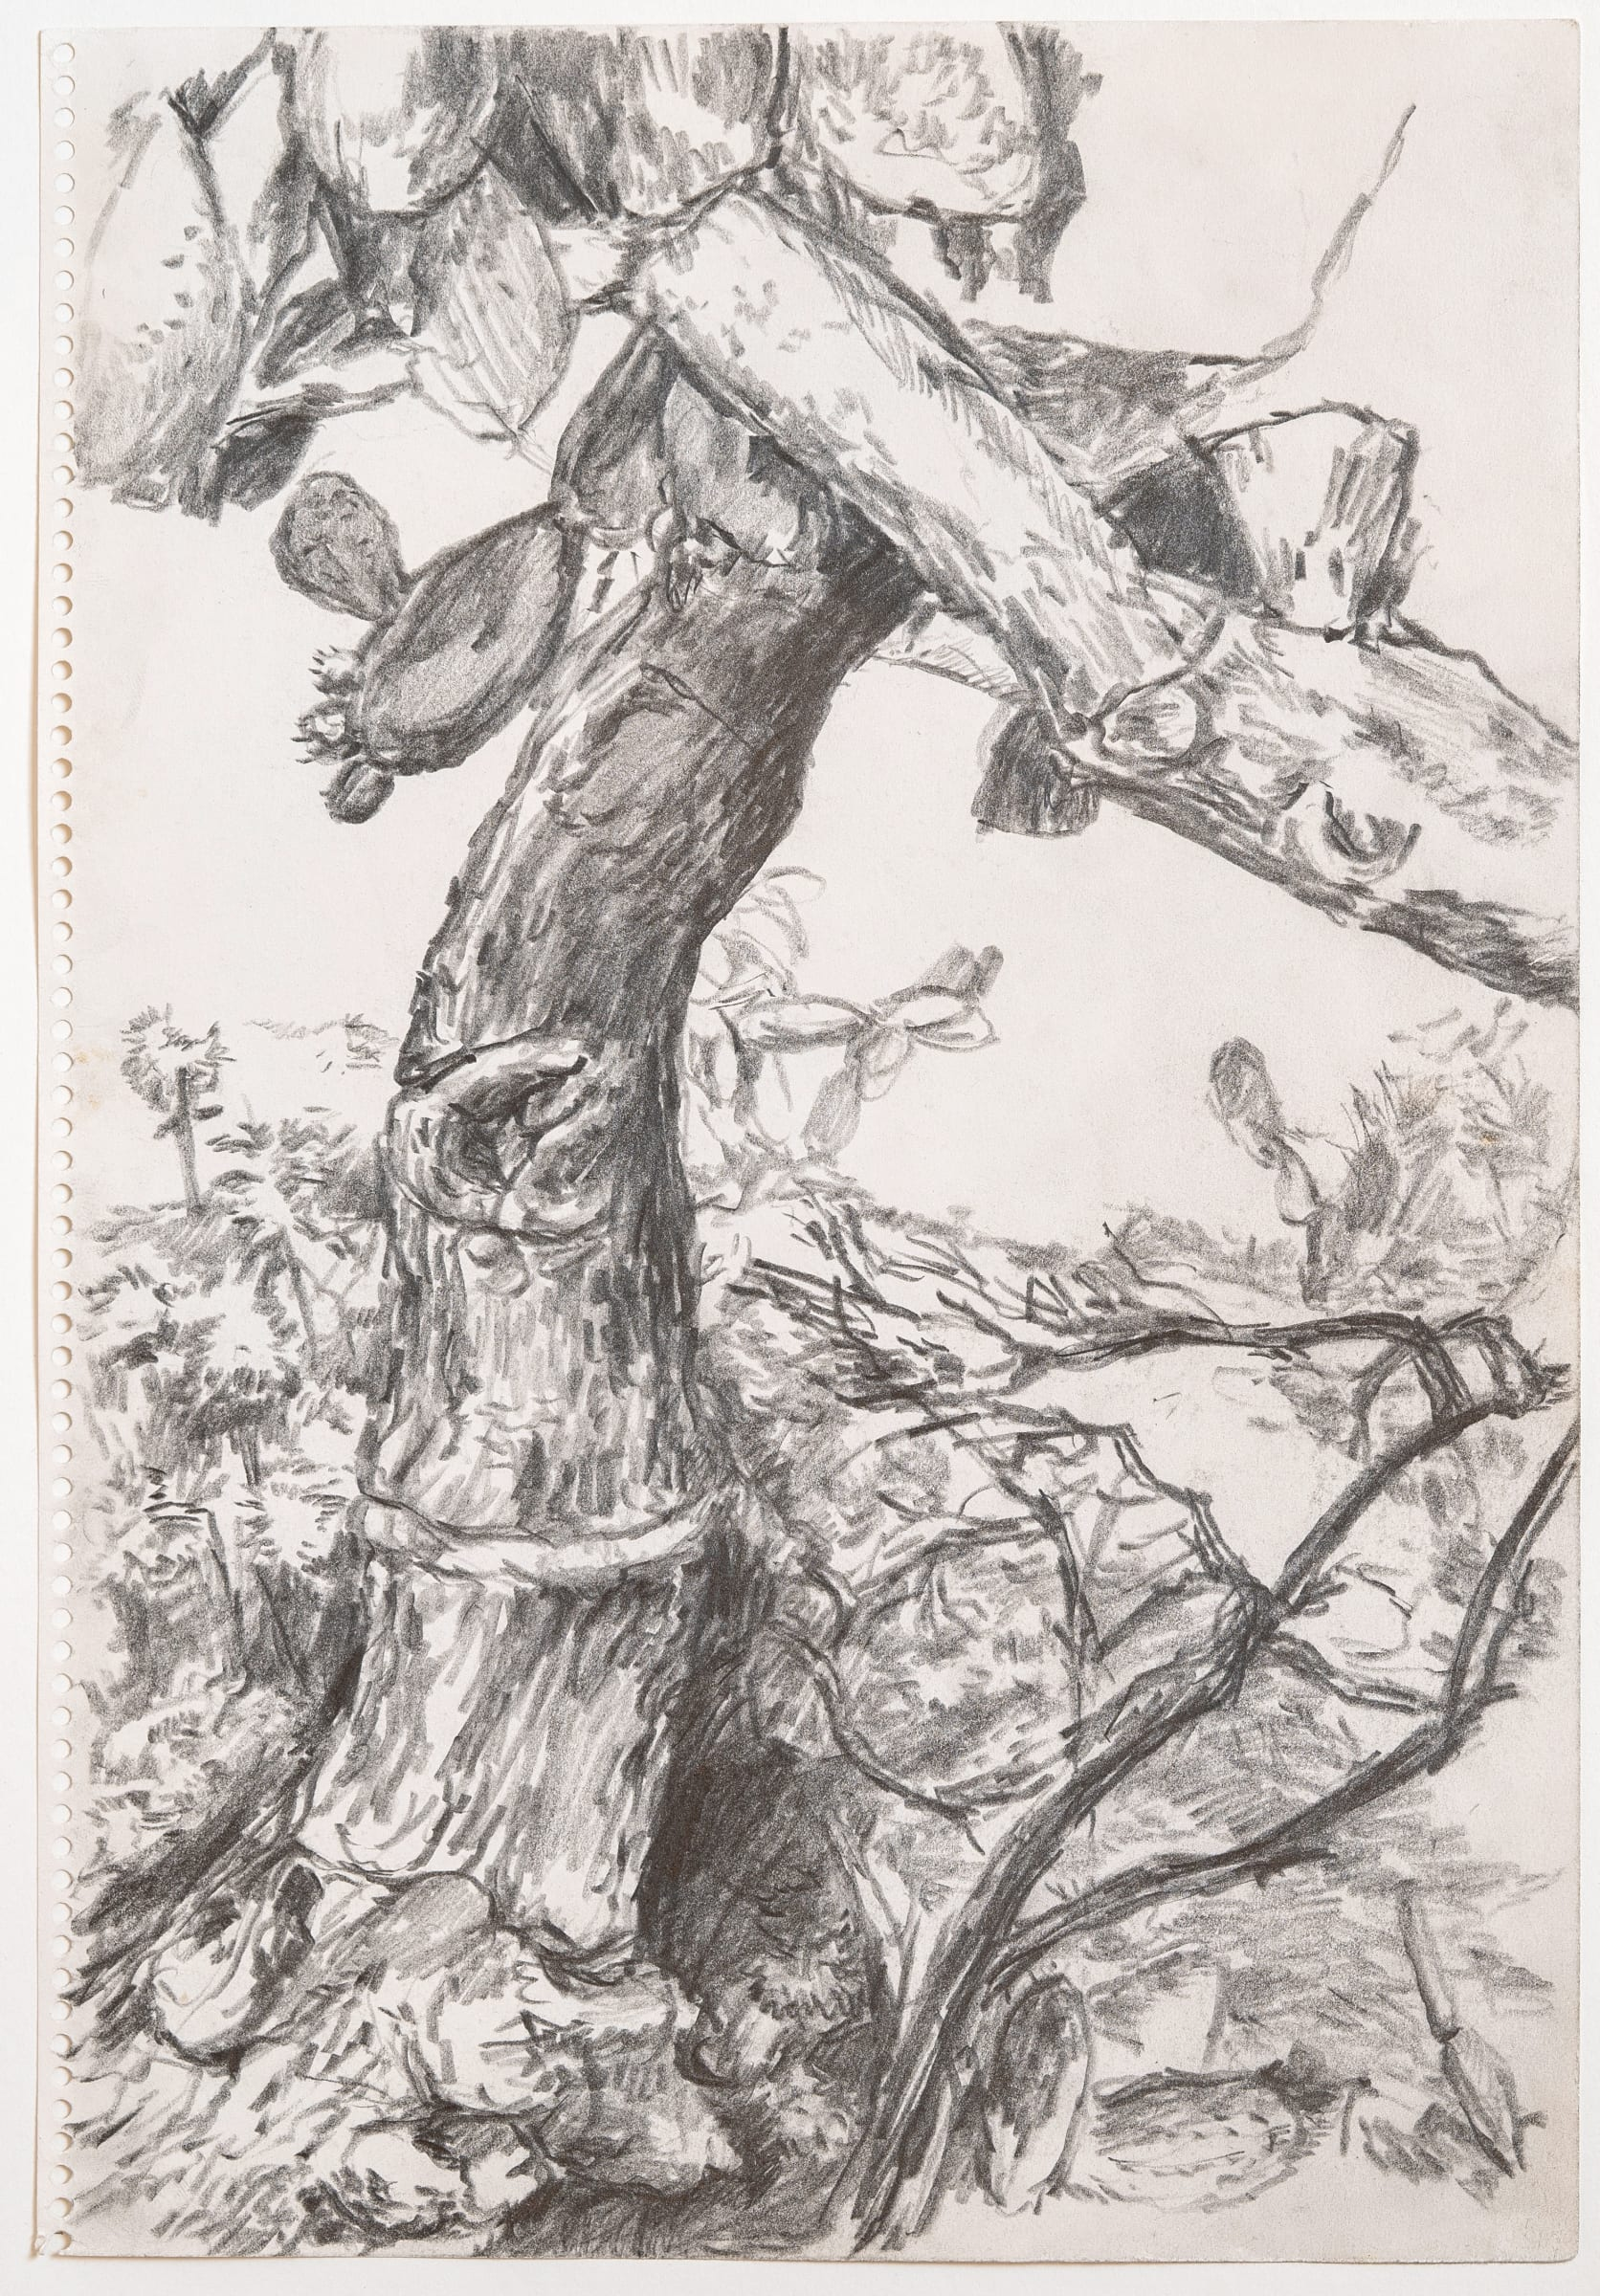 """<span class=""""link fancybox-details-link""""><a href=""""/artists/266-paul-thek/works/11210-paul-thek-untitled-tree-1970/"""">View Detail Page</a></span><div class=""""artist""""><span class=""""artist""""><strong>PAUL THEK</strong></span></div><div class=""""title""""><em>Untitled (Tree)</em>, 1970</div><div class=""""medium"""">Pencil on paper</div><div class=""""dimensions"""">34 x 23.5 cm<br /> 13 3/8 x 9 1/4 inches</div>"""